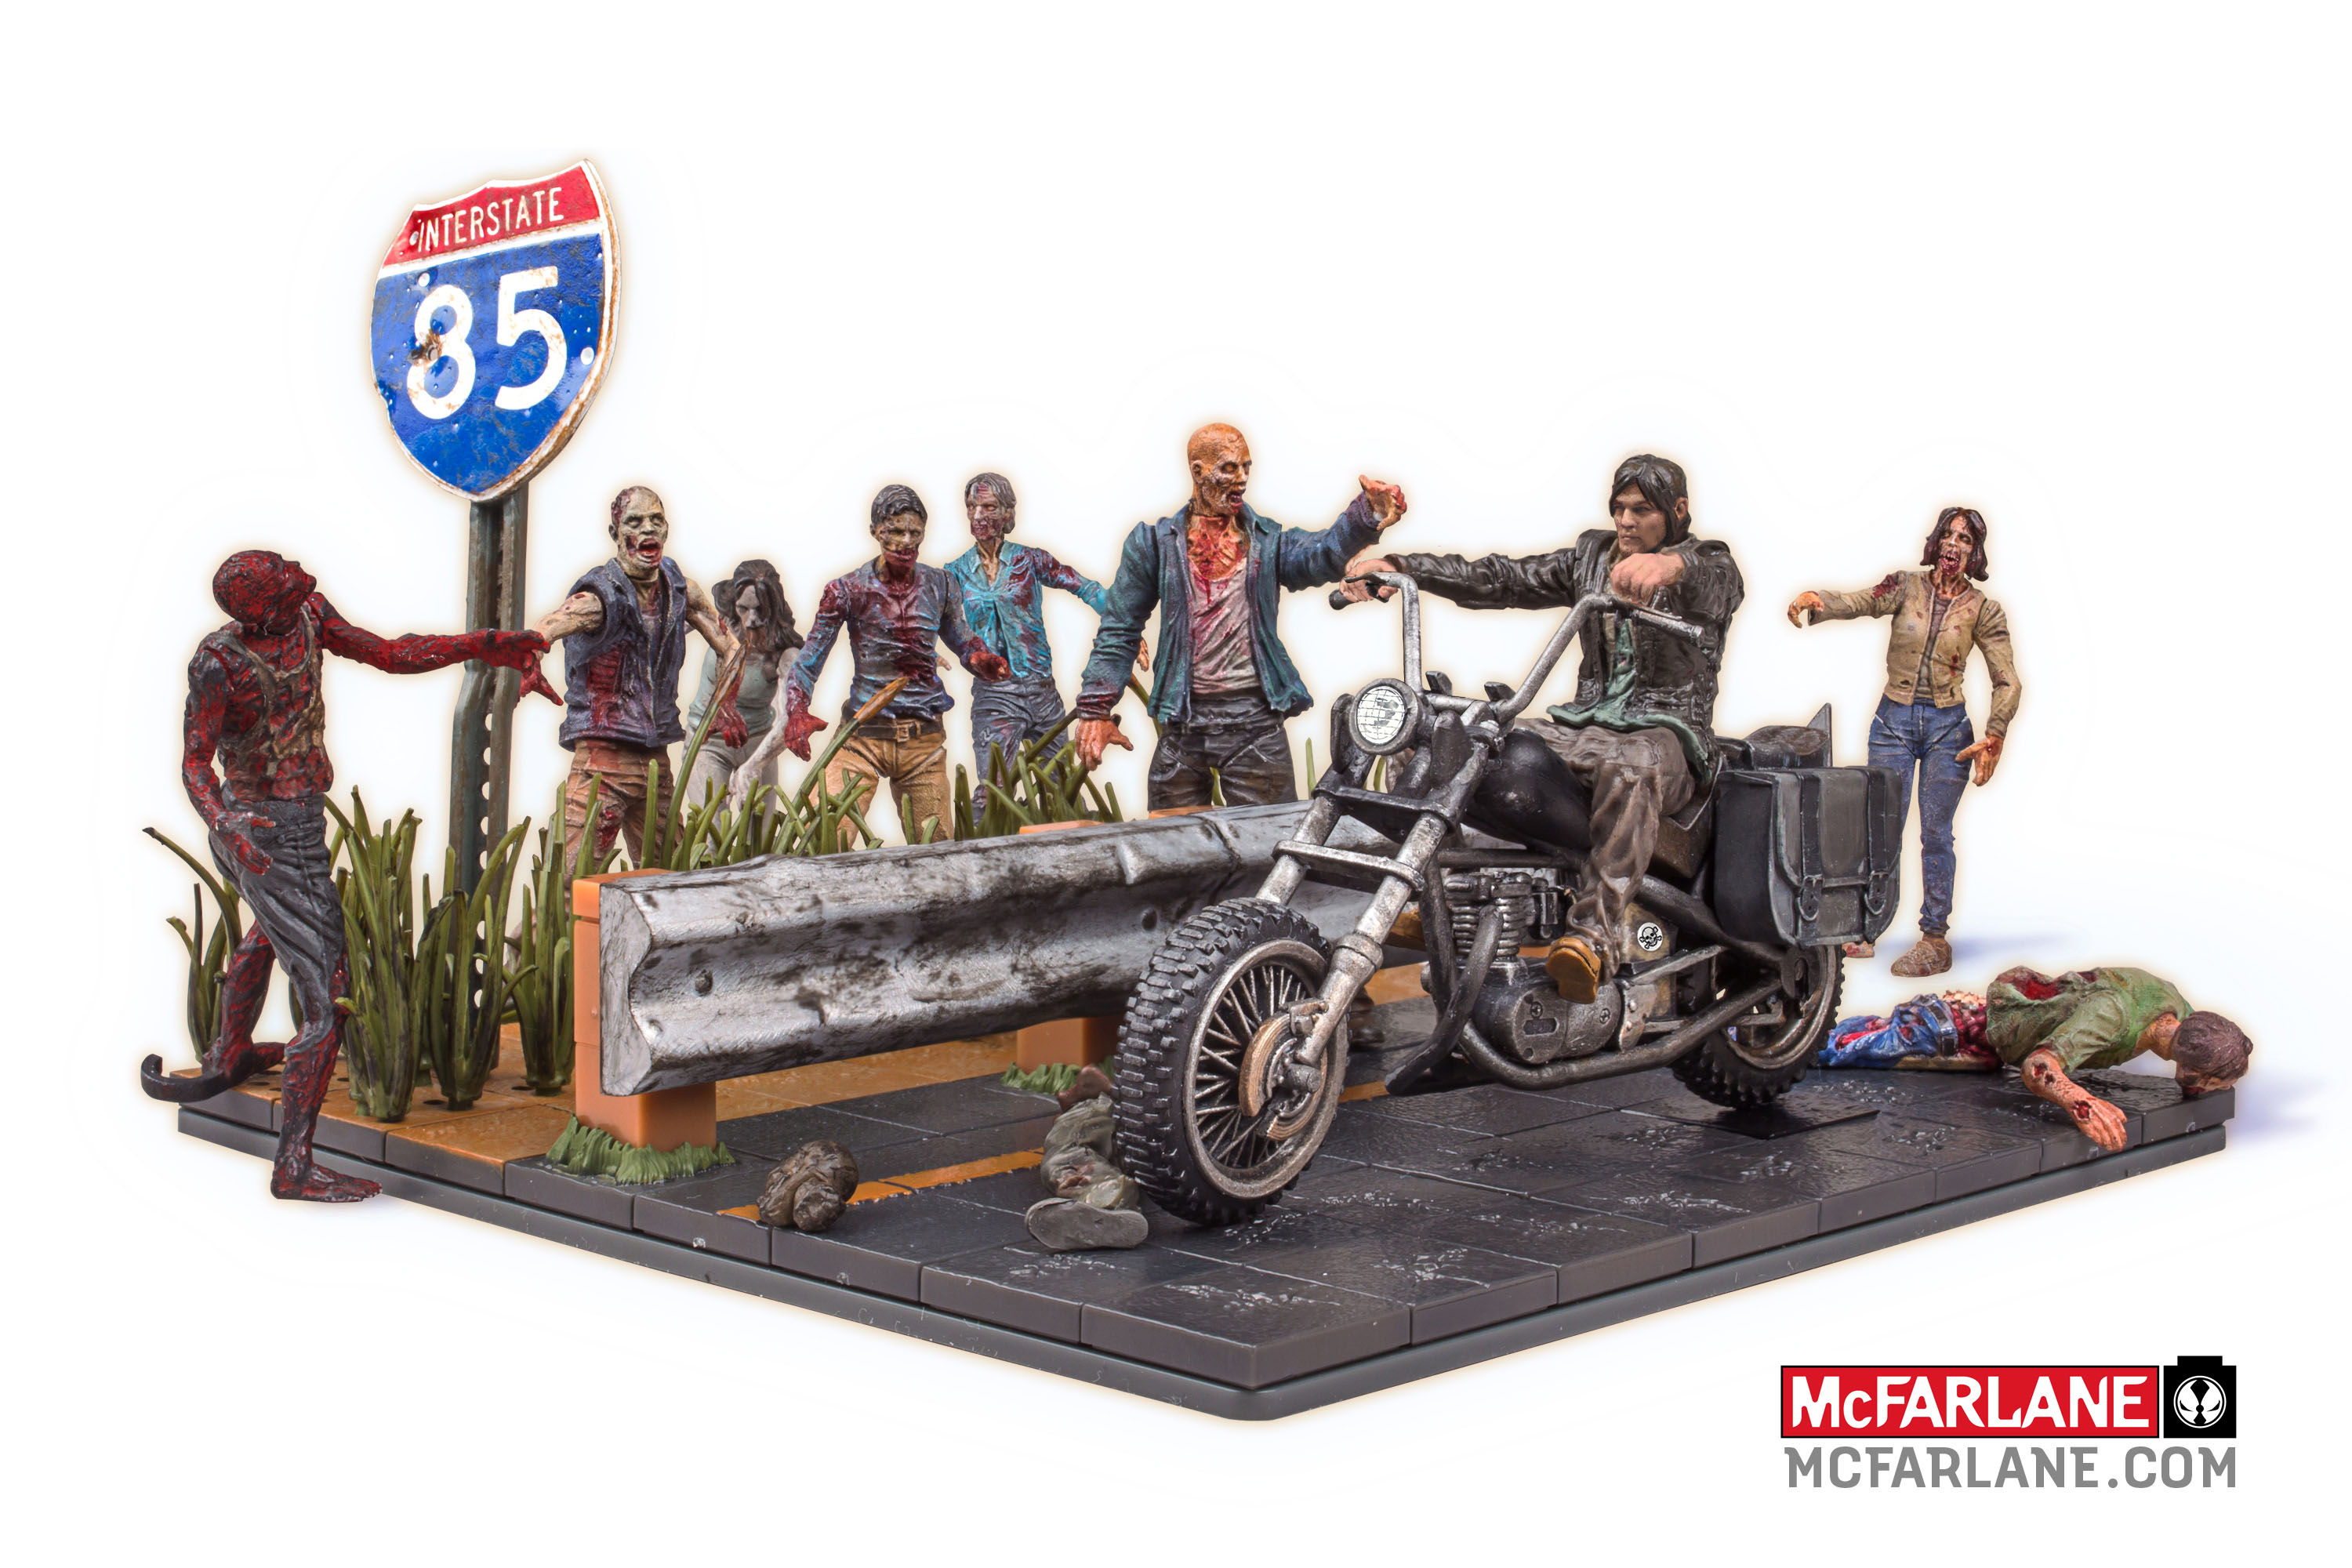 Walking dead lego daryl the walking - Mcfarlane Toys Launching The Walking Dead Building Block Sets